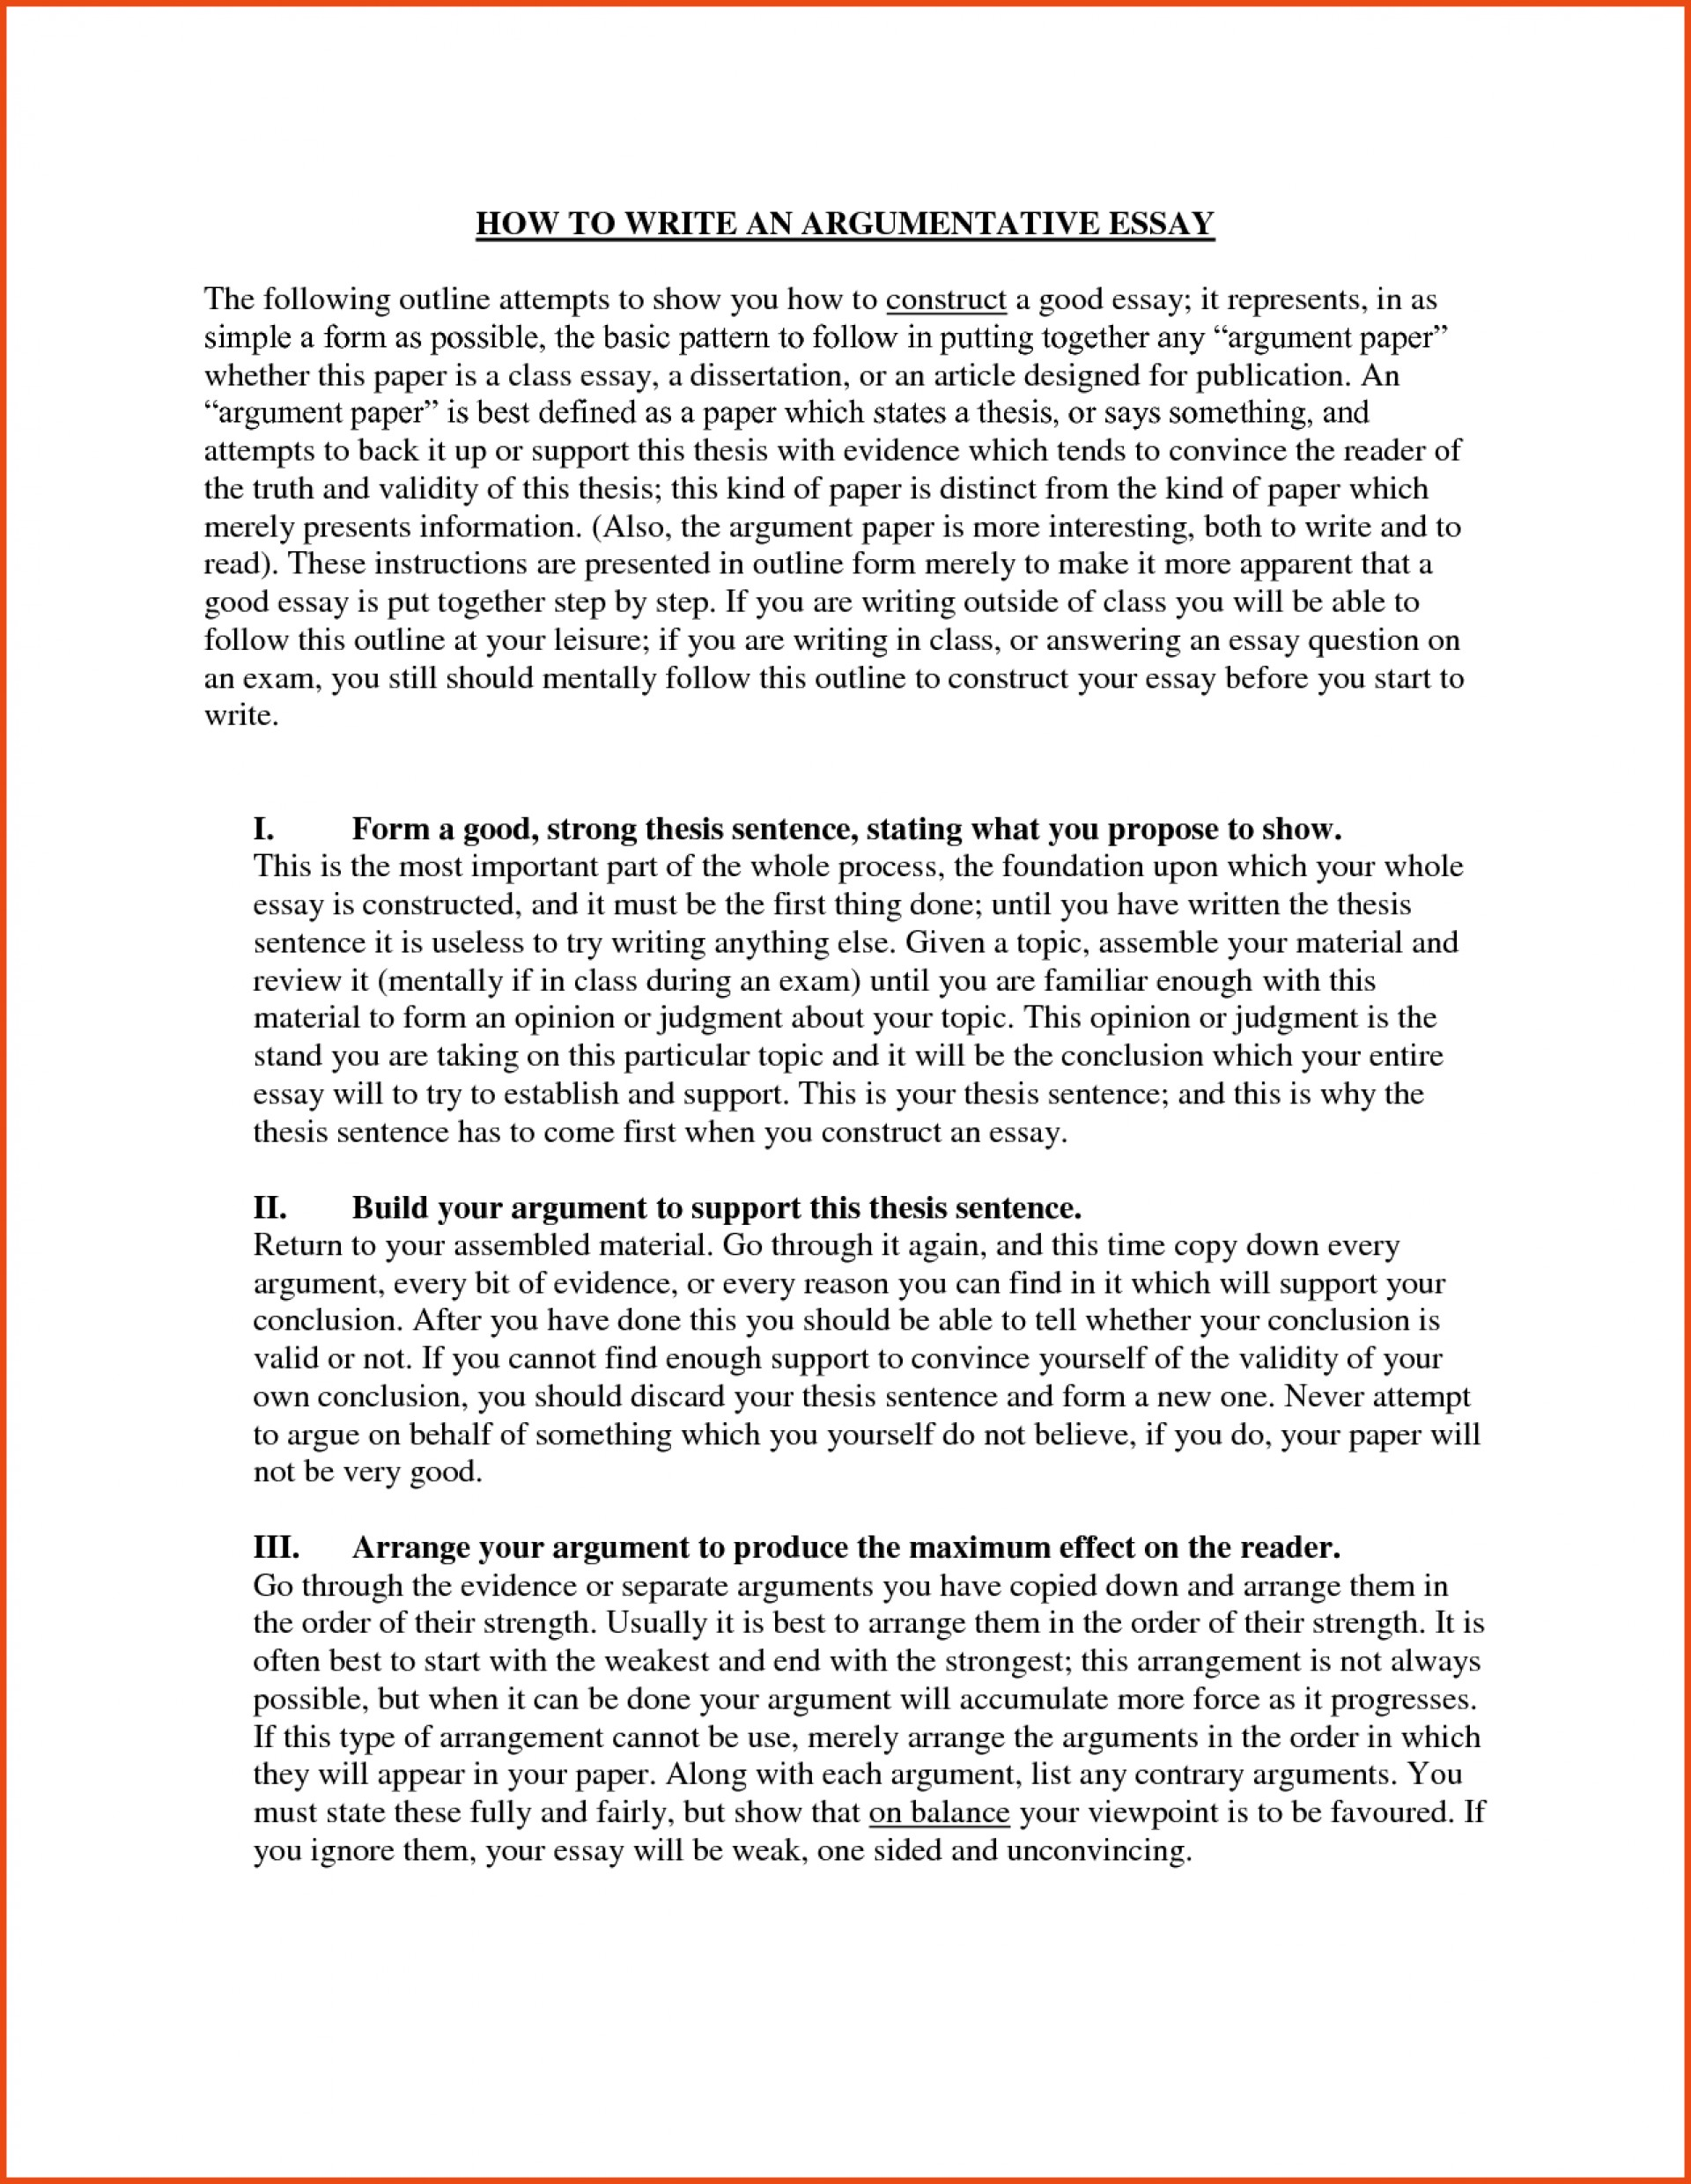 003 Ways To Start An Essay How About Me Help Check Rush Examples Do I Good Way L Expository Academic Application Writing Argumentative Informative Analysis Conclusion Unusual A College Hook Best Introduction Observation 1920